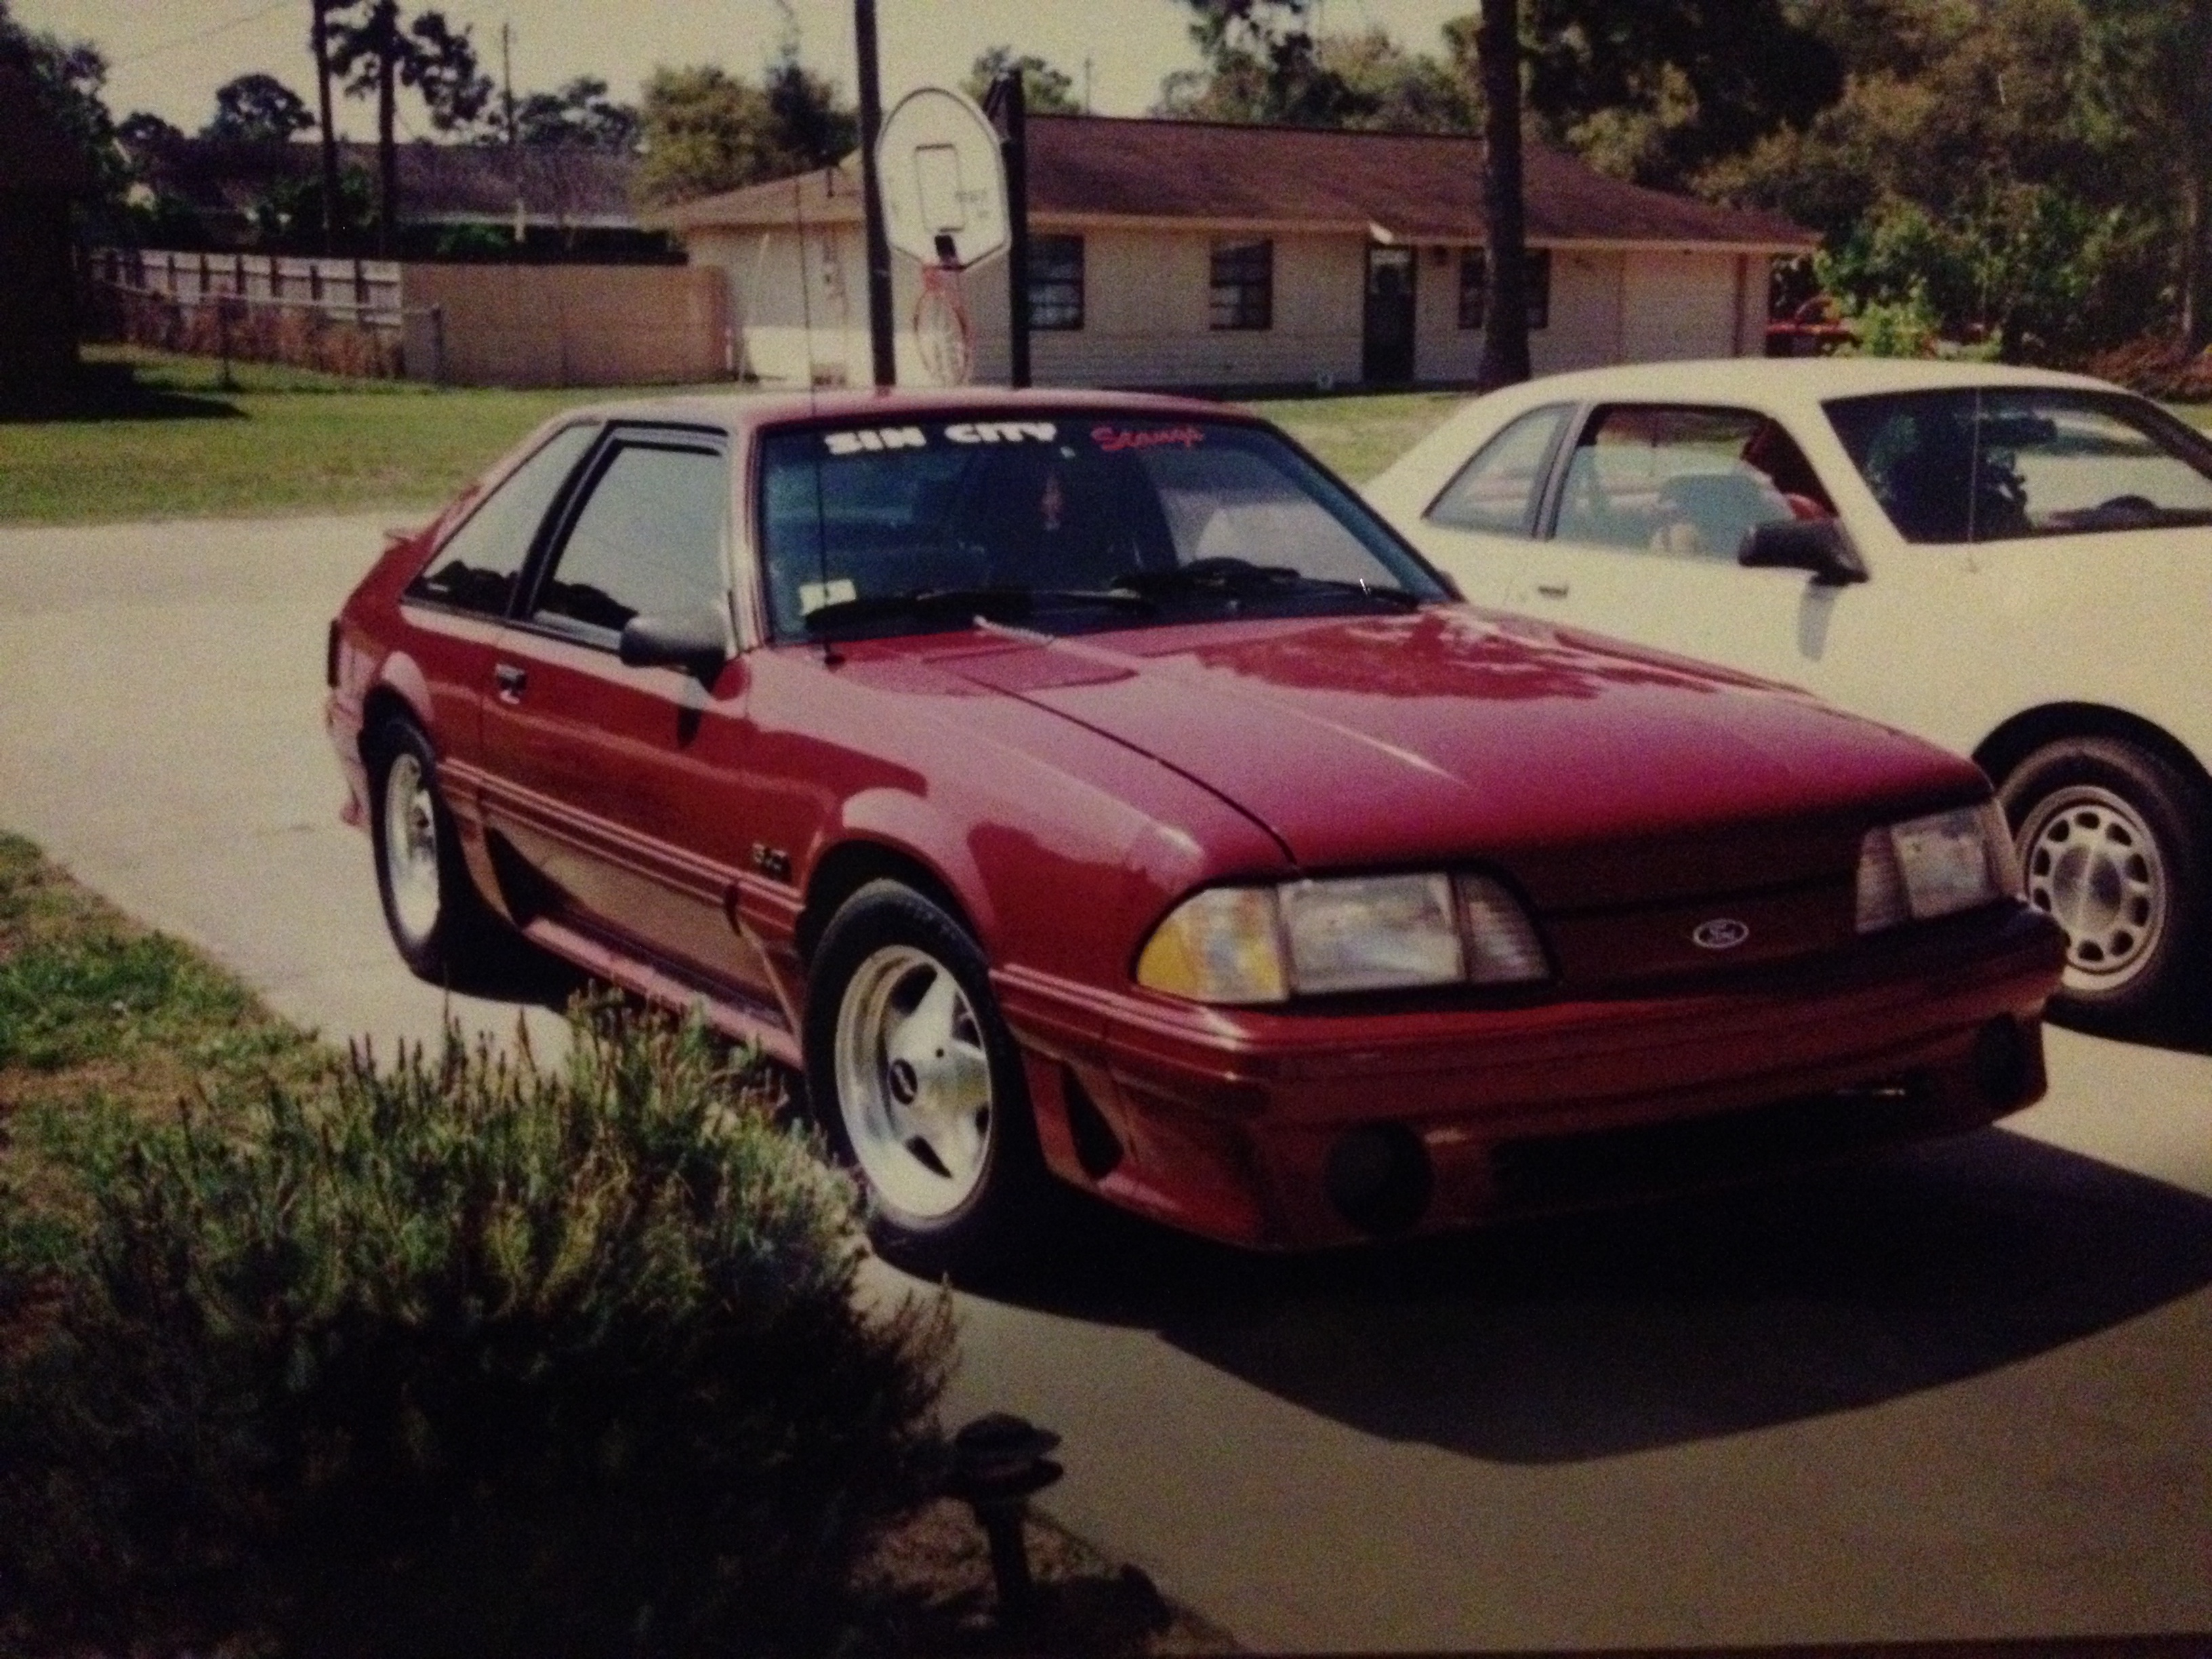 My old 87 GT ..the first of my Foxbody addiction - 19117308